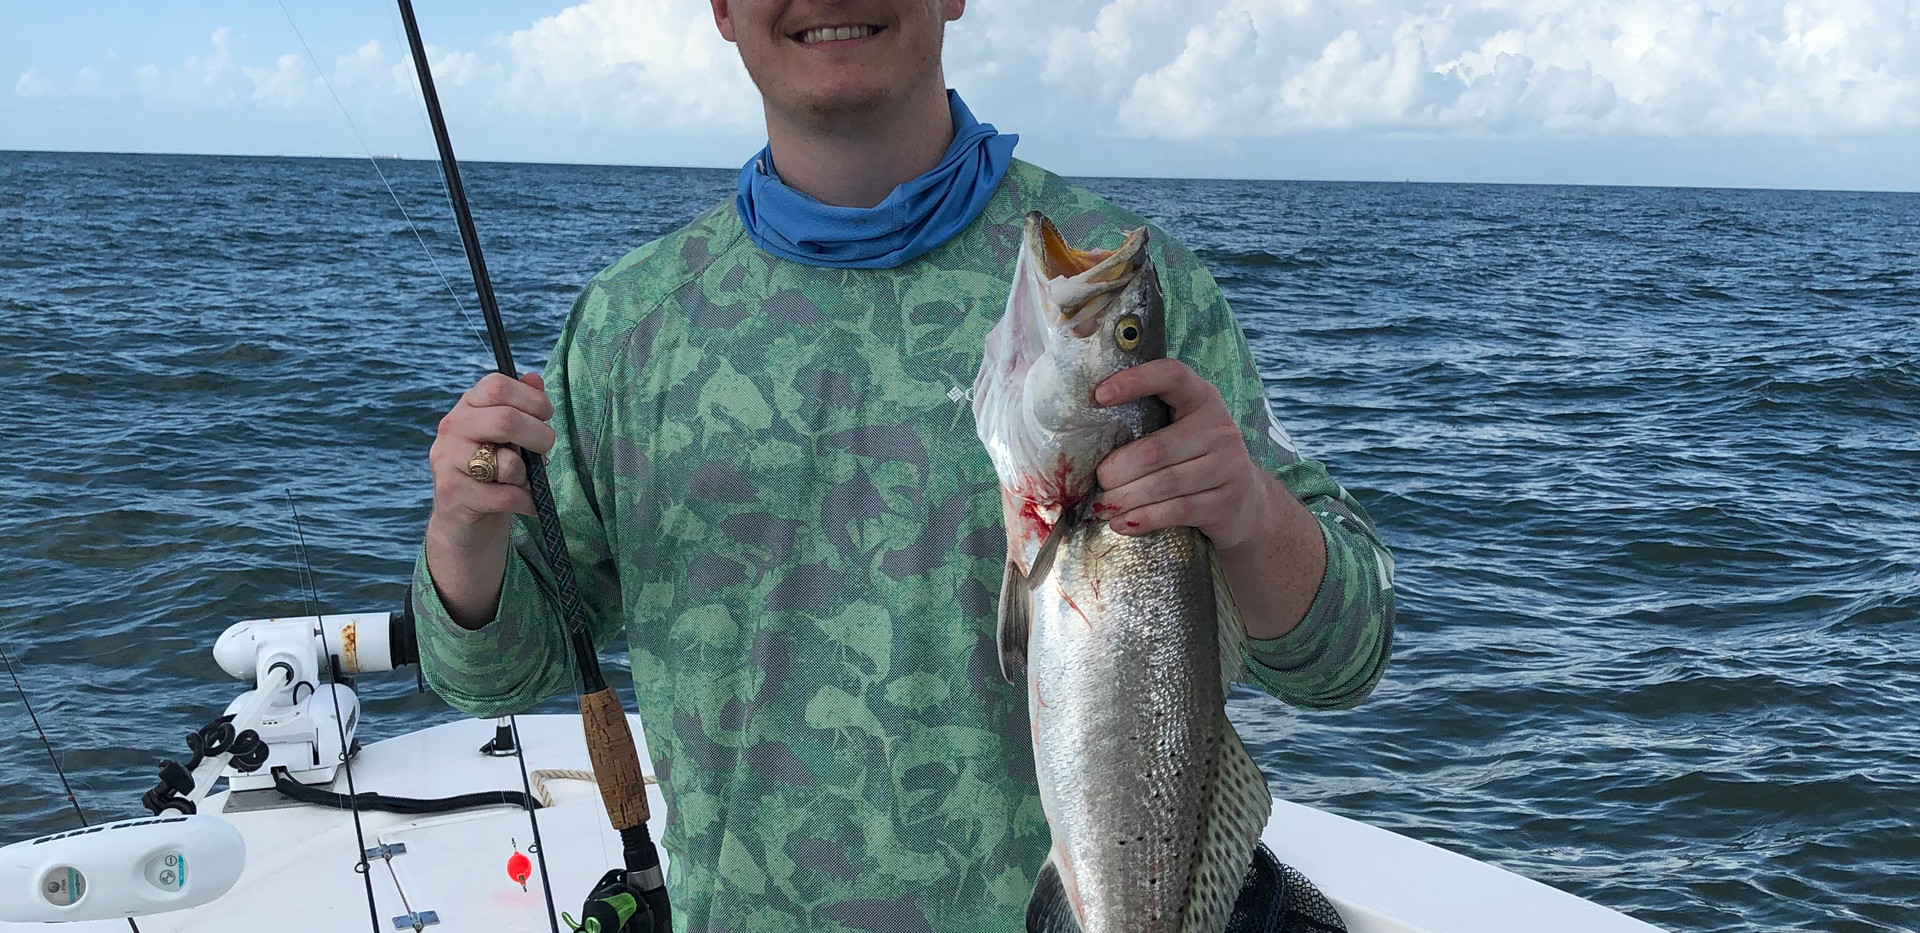 Galveston Bay is teeming with Speckled Trout